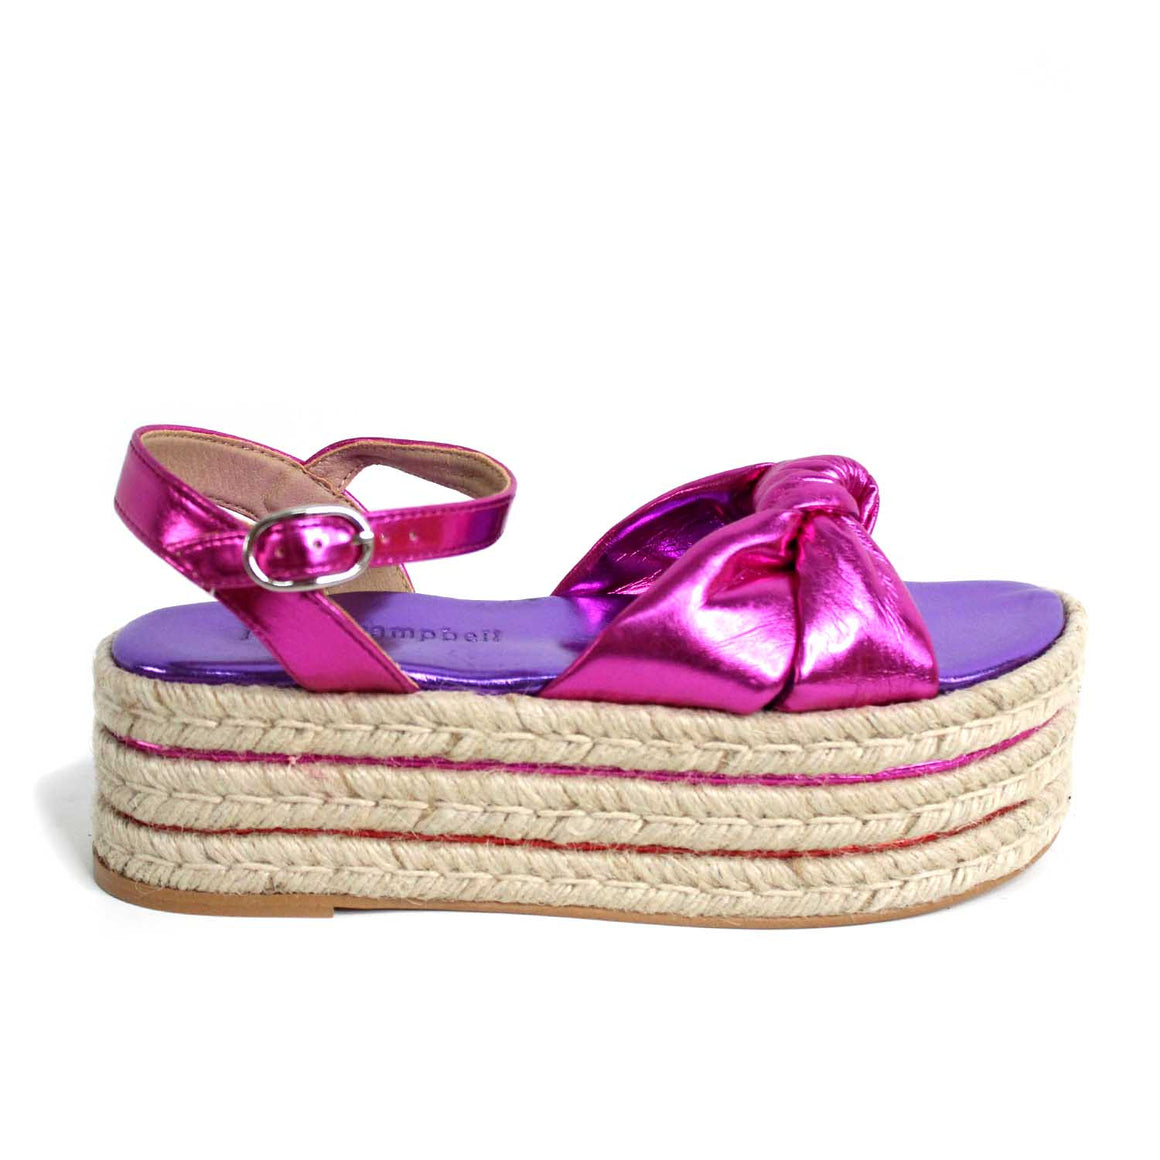 JEFFREY CAMPBELL NAPA LAME FUCHSIA MULTI SANDALS